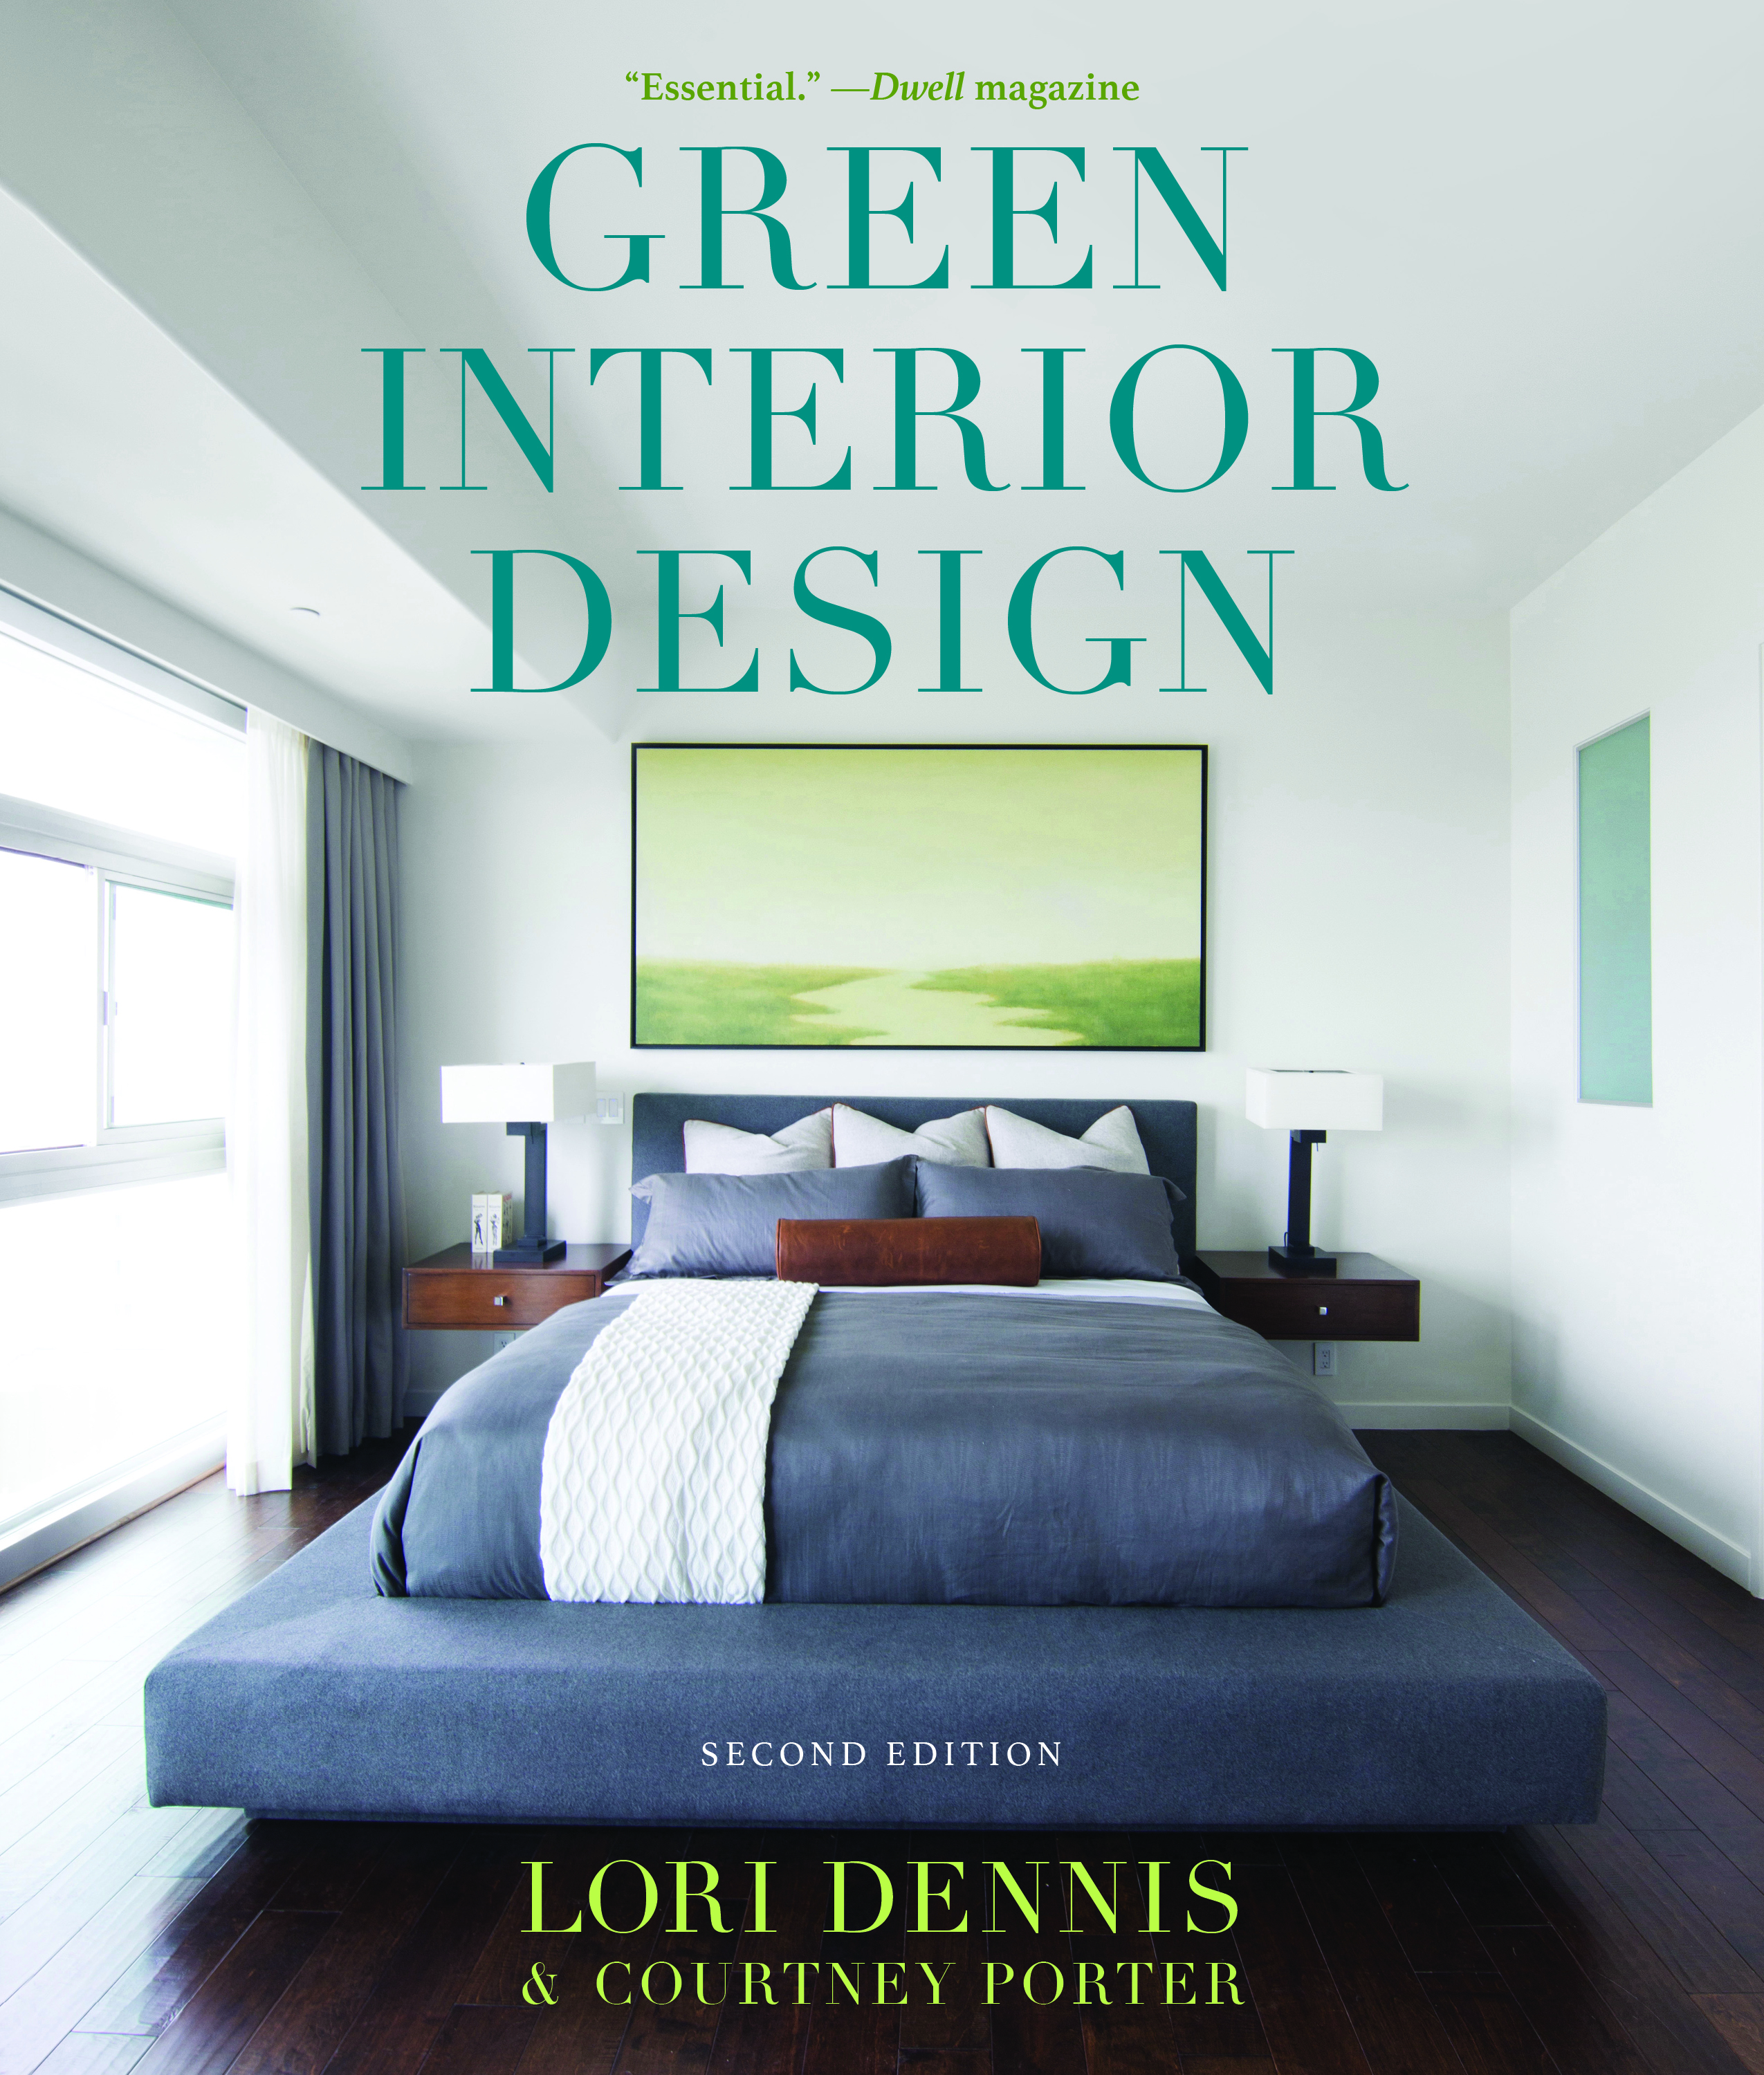 Green Interior Design by Courtney Porter and Lori Dennis